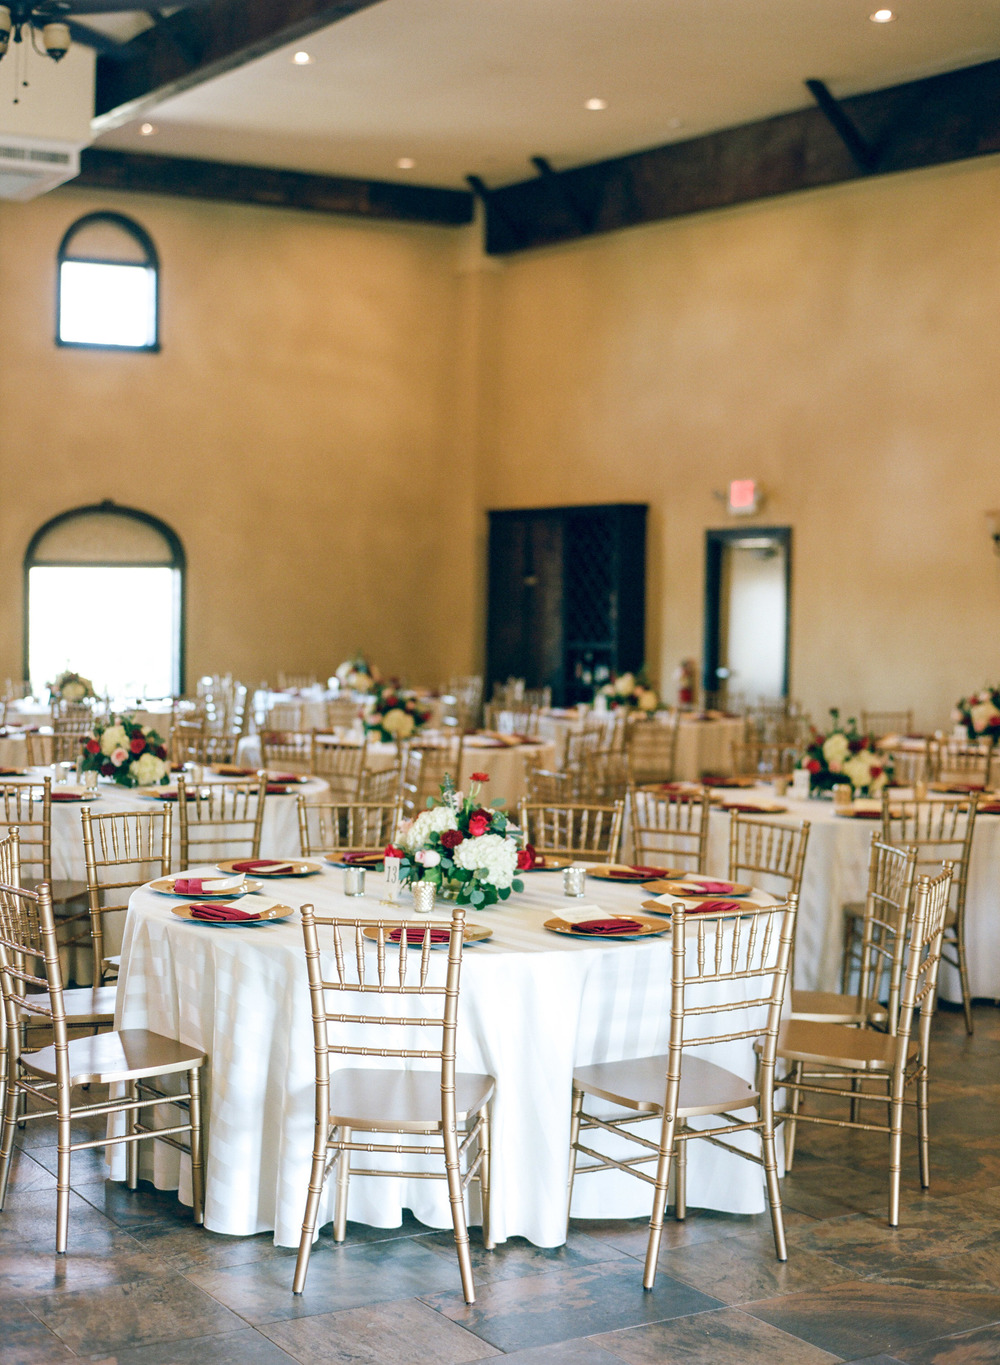 Dana-Fernandez-Photography-Tuscan-Courtyard-Houston-Wedding-Photographer-Film-Texas-22.jpg